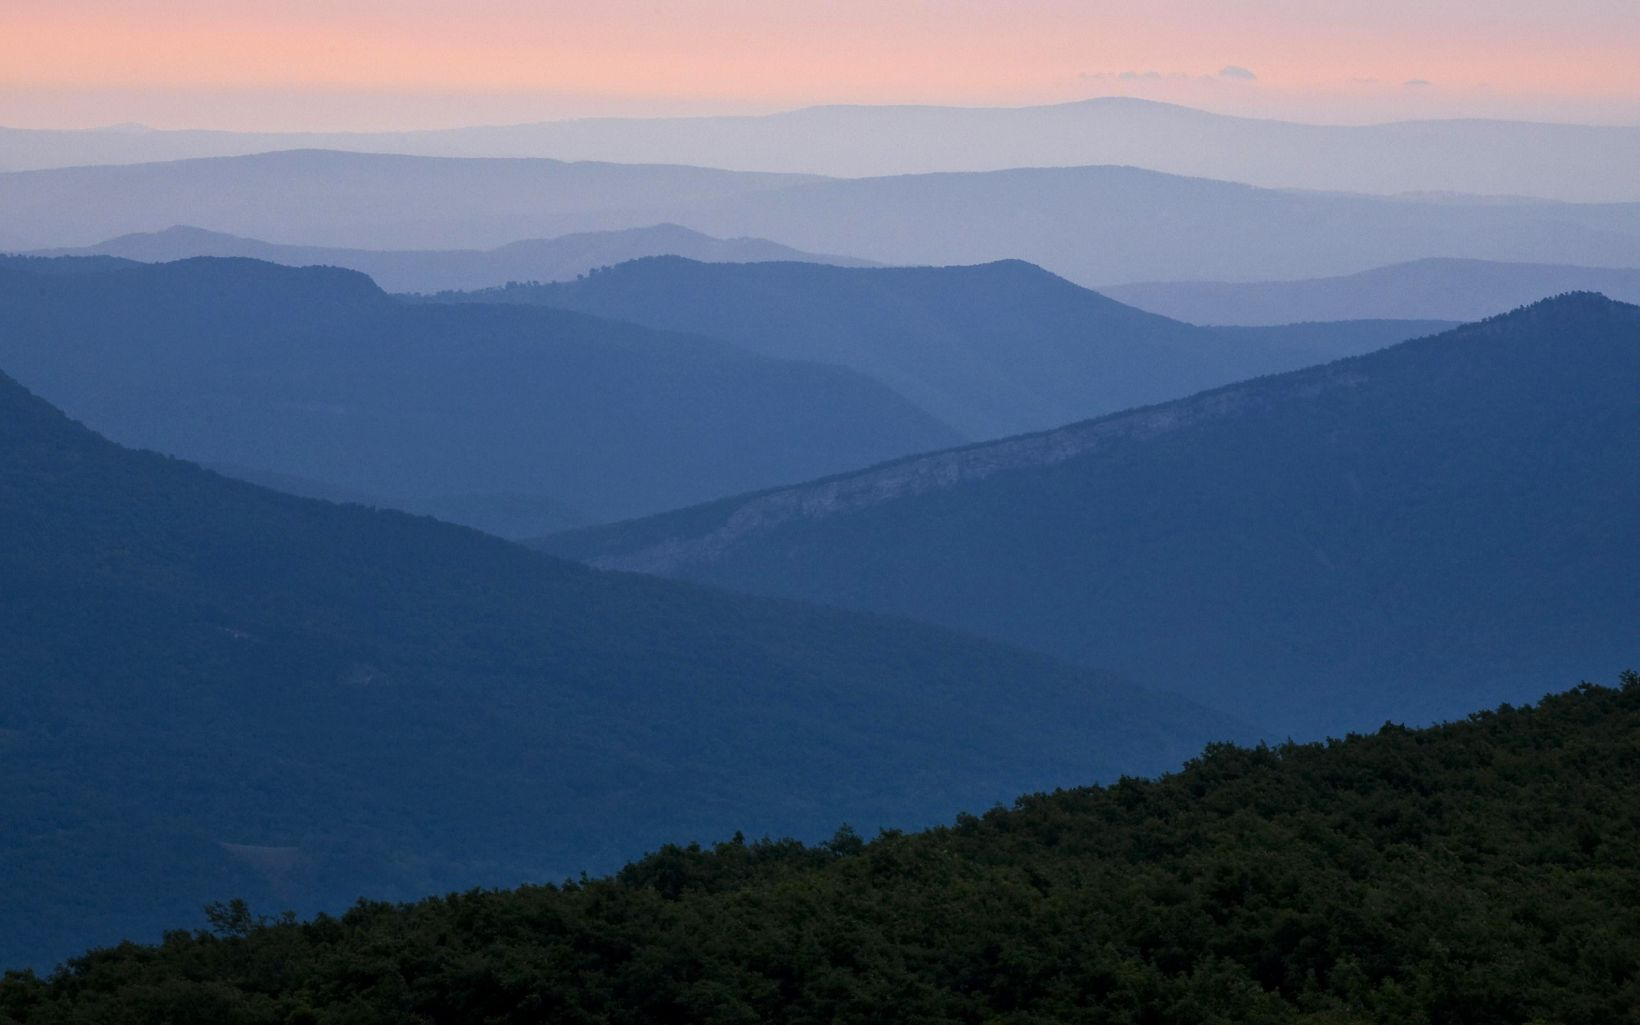 Dawn high above Canaan Valley, in the Dolly Sods Wilderness, West Virginia.